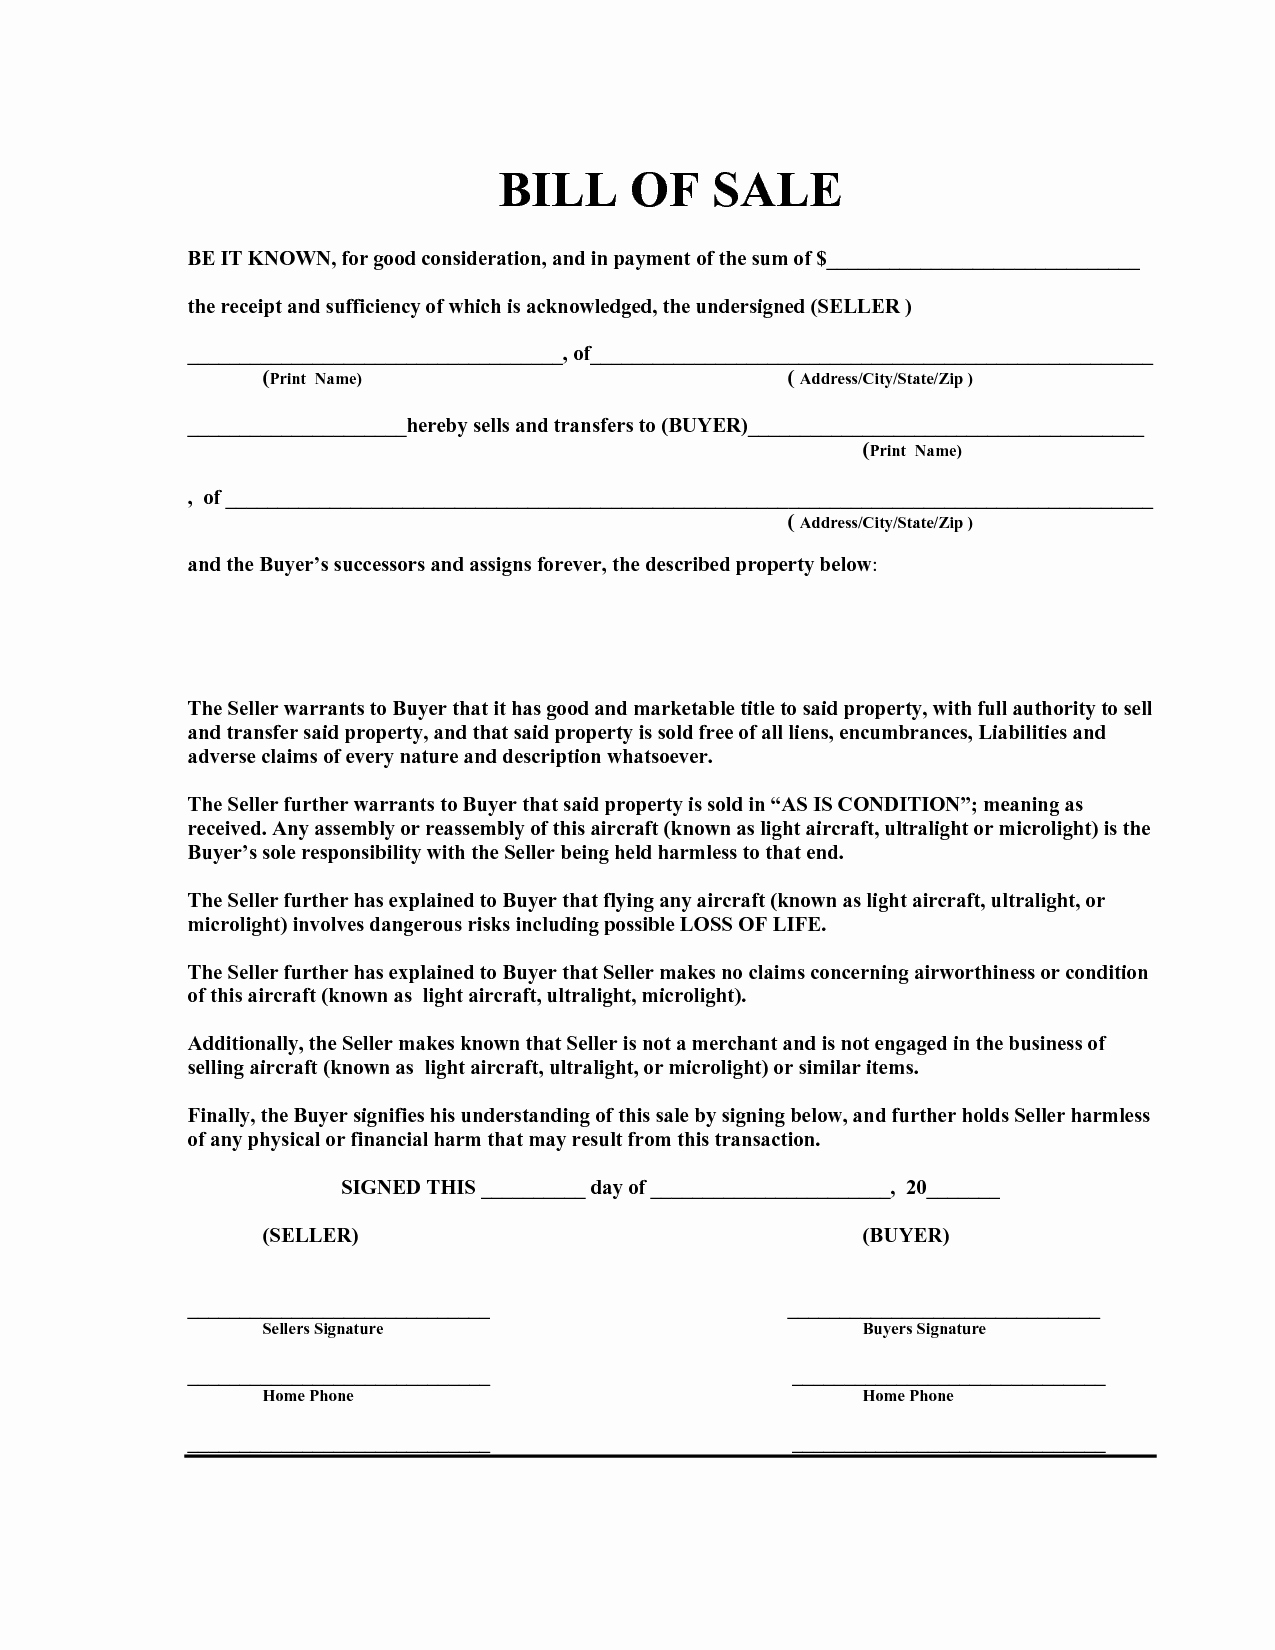 Bill Sale for Land Simple Car Anuvratinfo